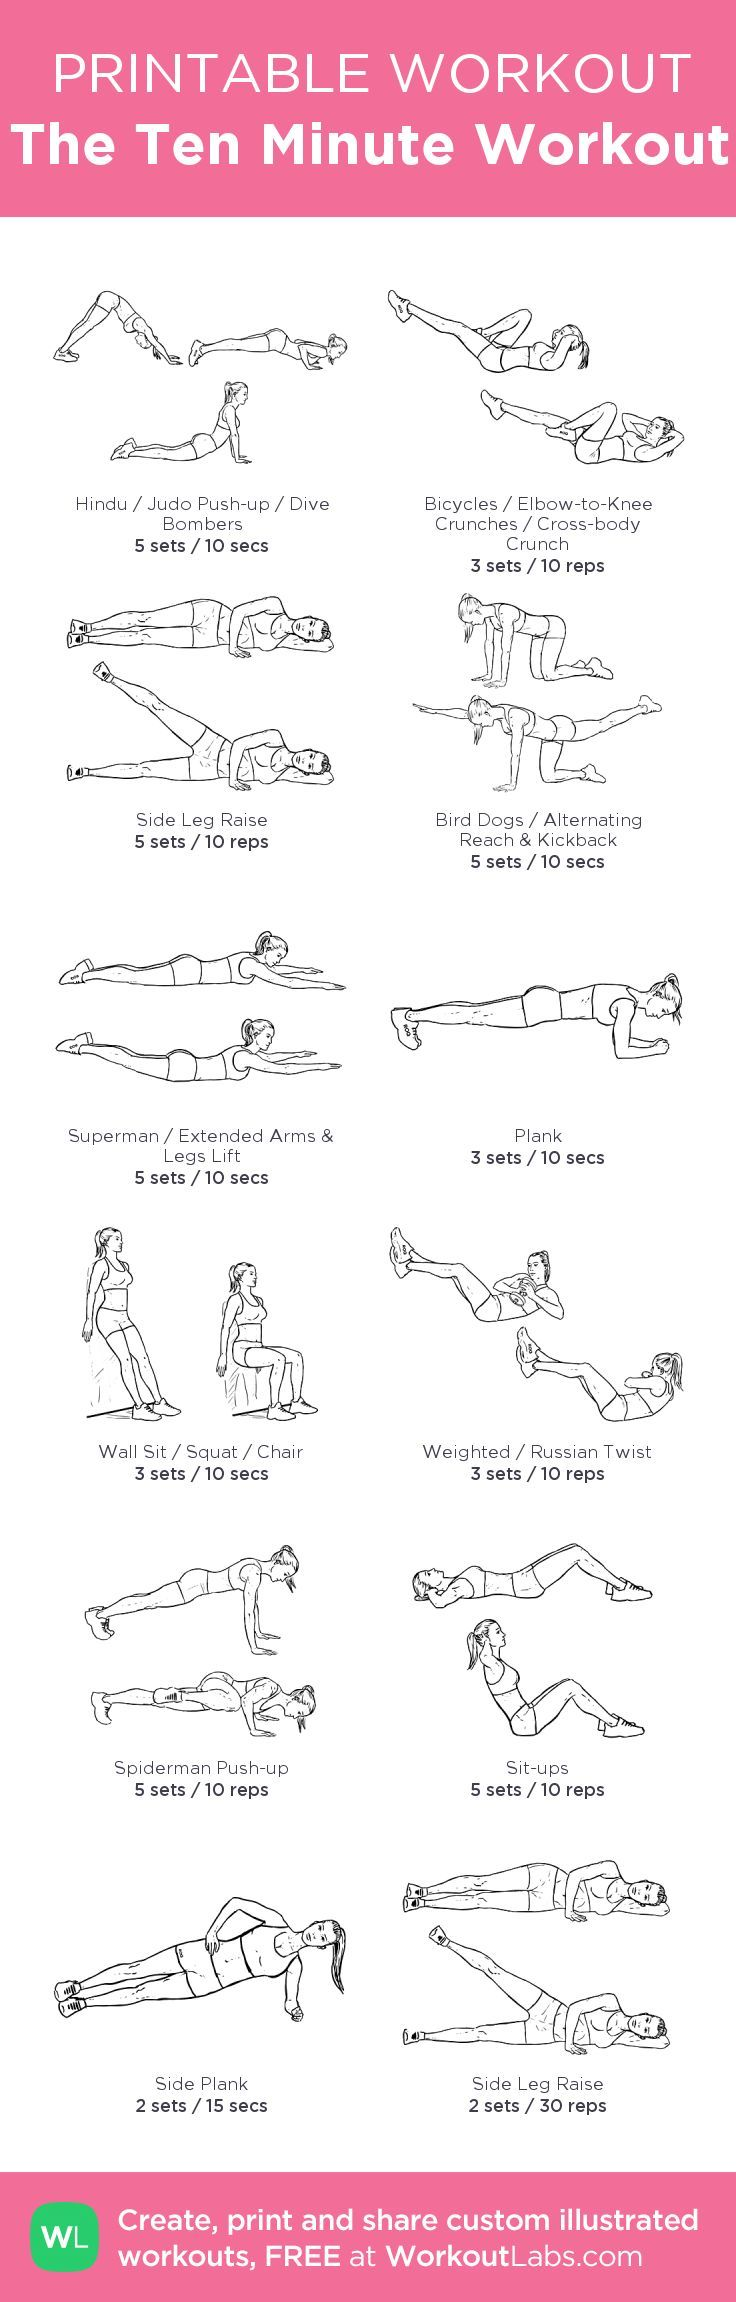 The Ten Minute Workout Work Out For Me Ten Minute